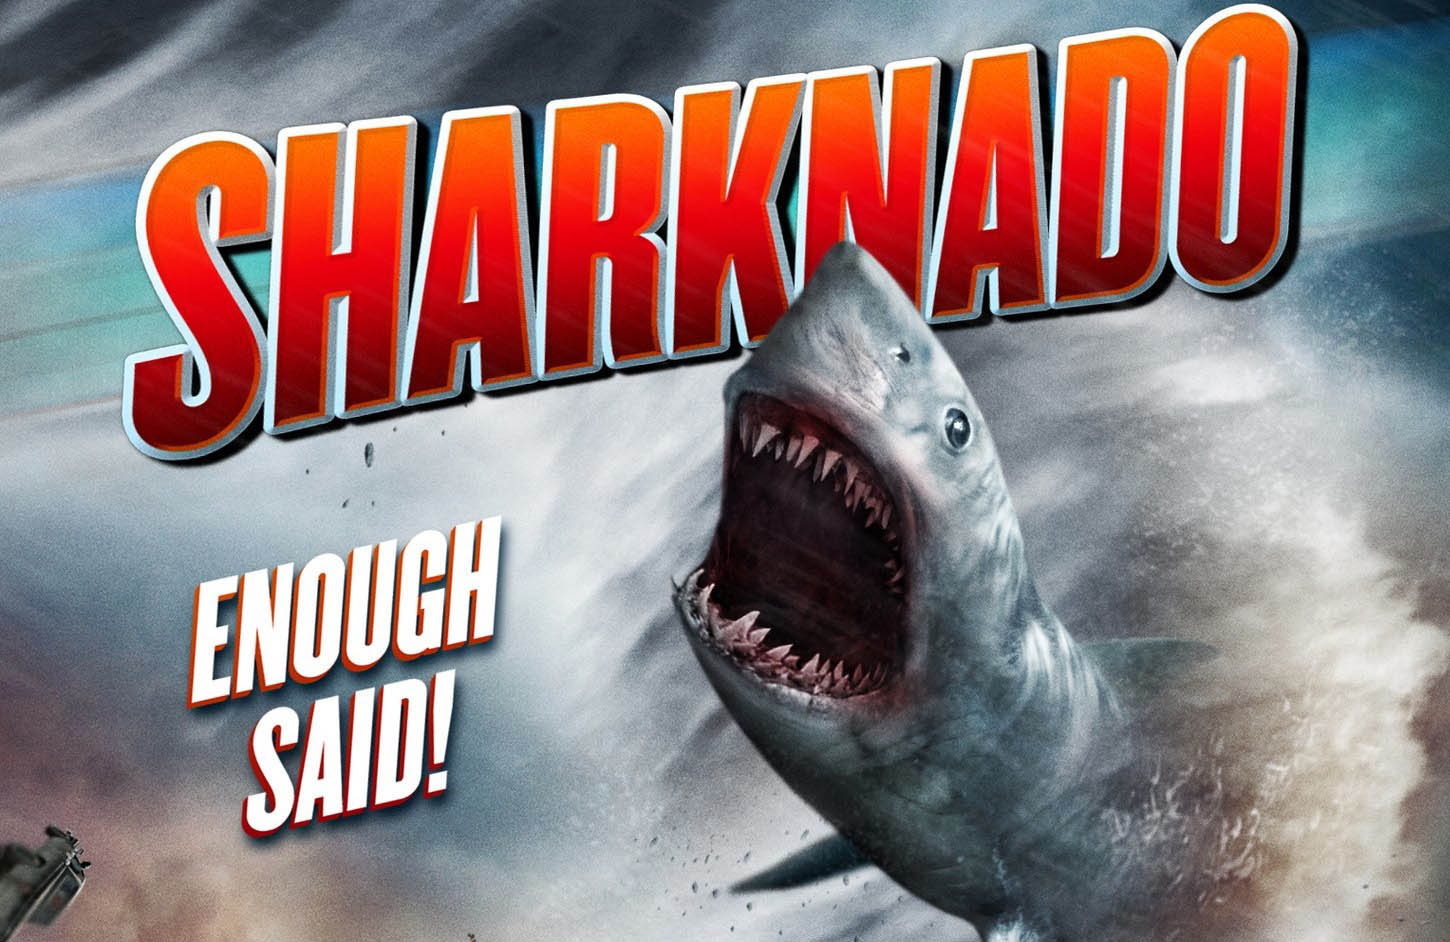 Movie Review: Sharknado - Electric Shadows